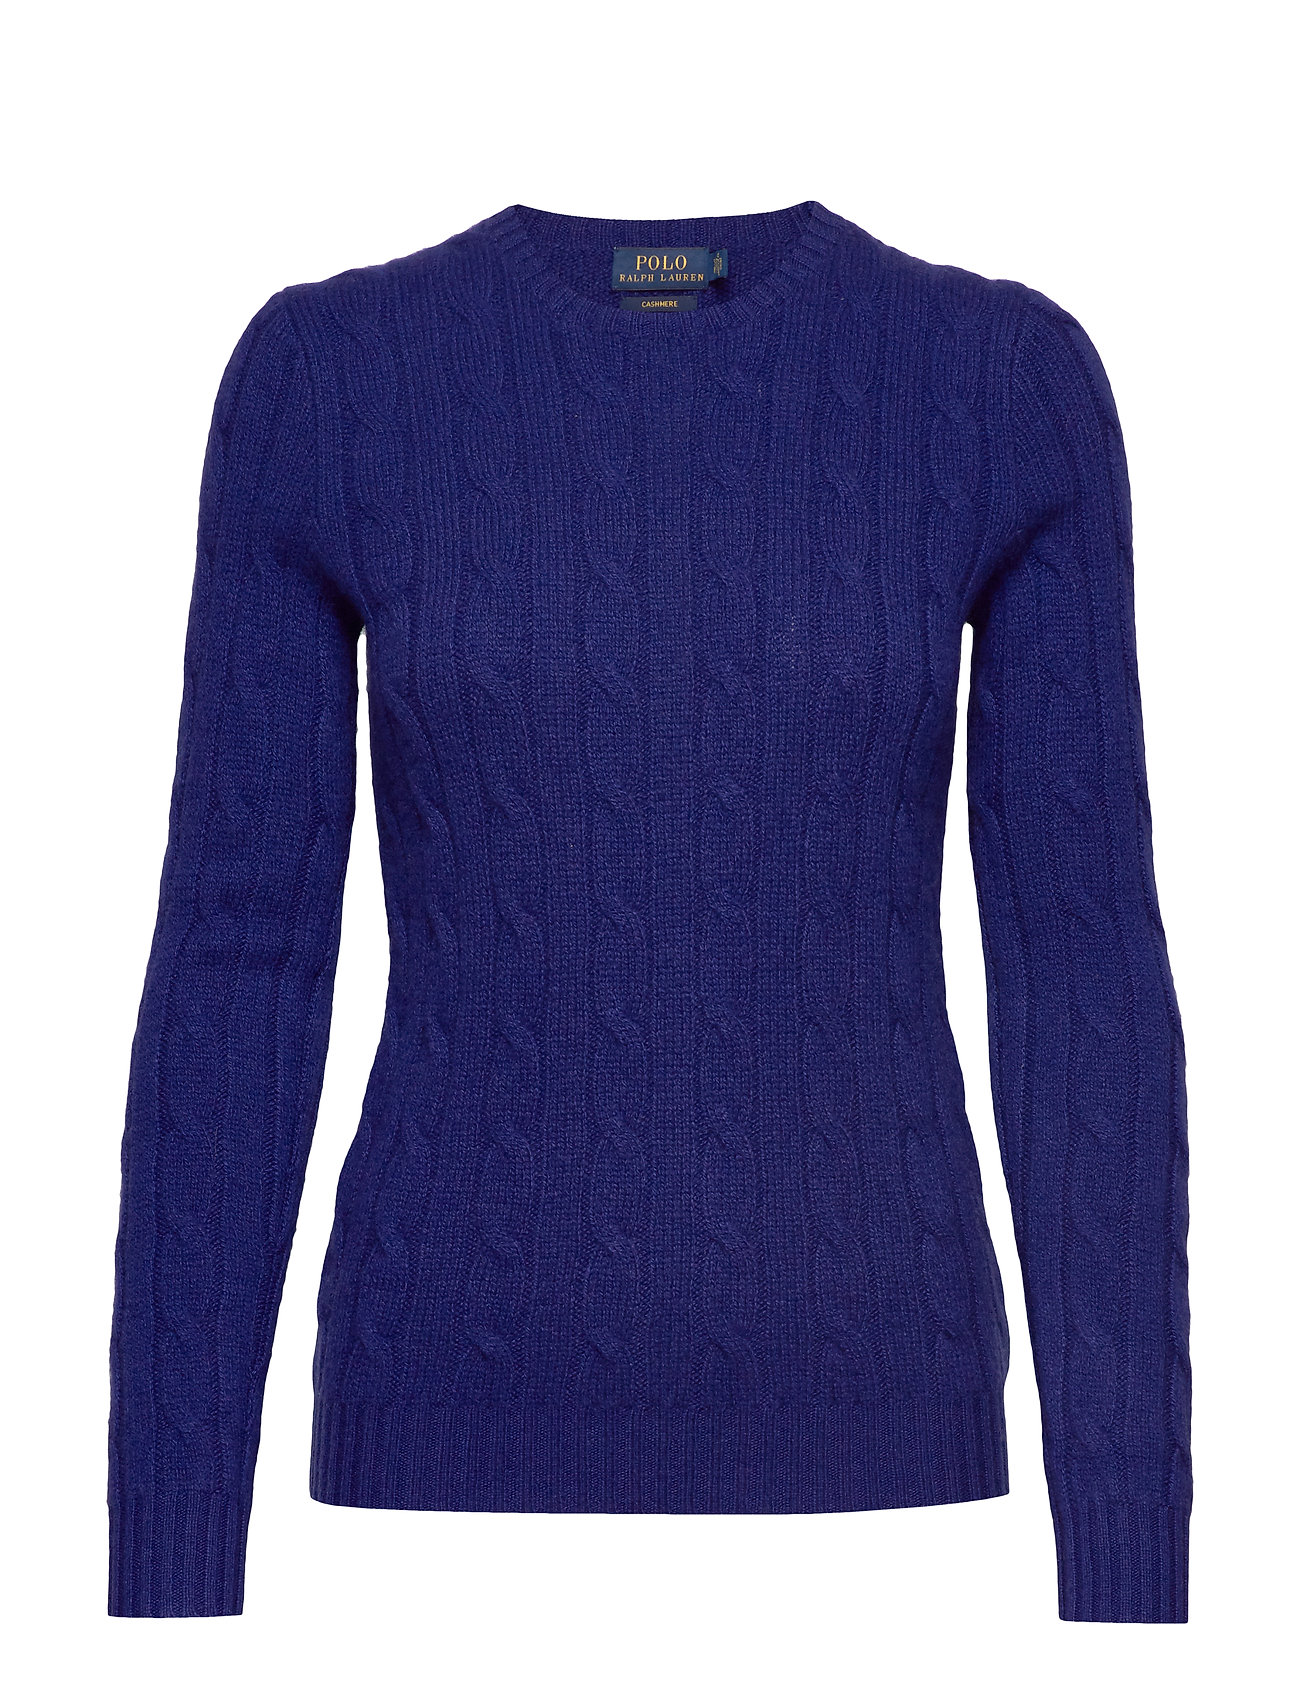 Polo Ralph Lauren Cable-Knit Cashmere Sweater - FALL ROYAL